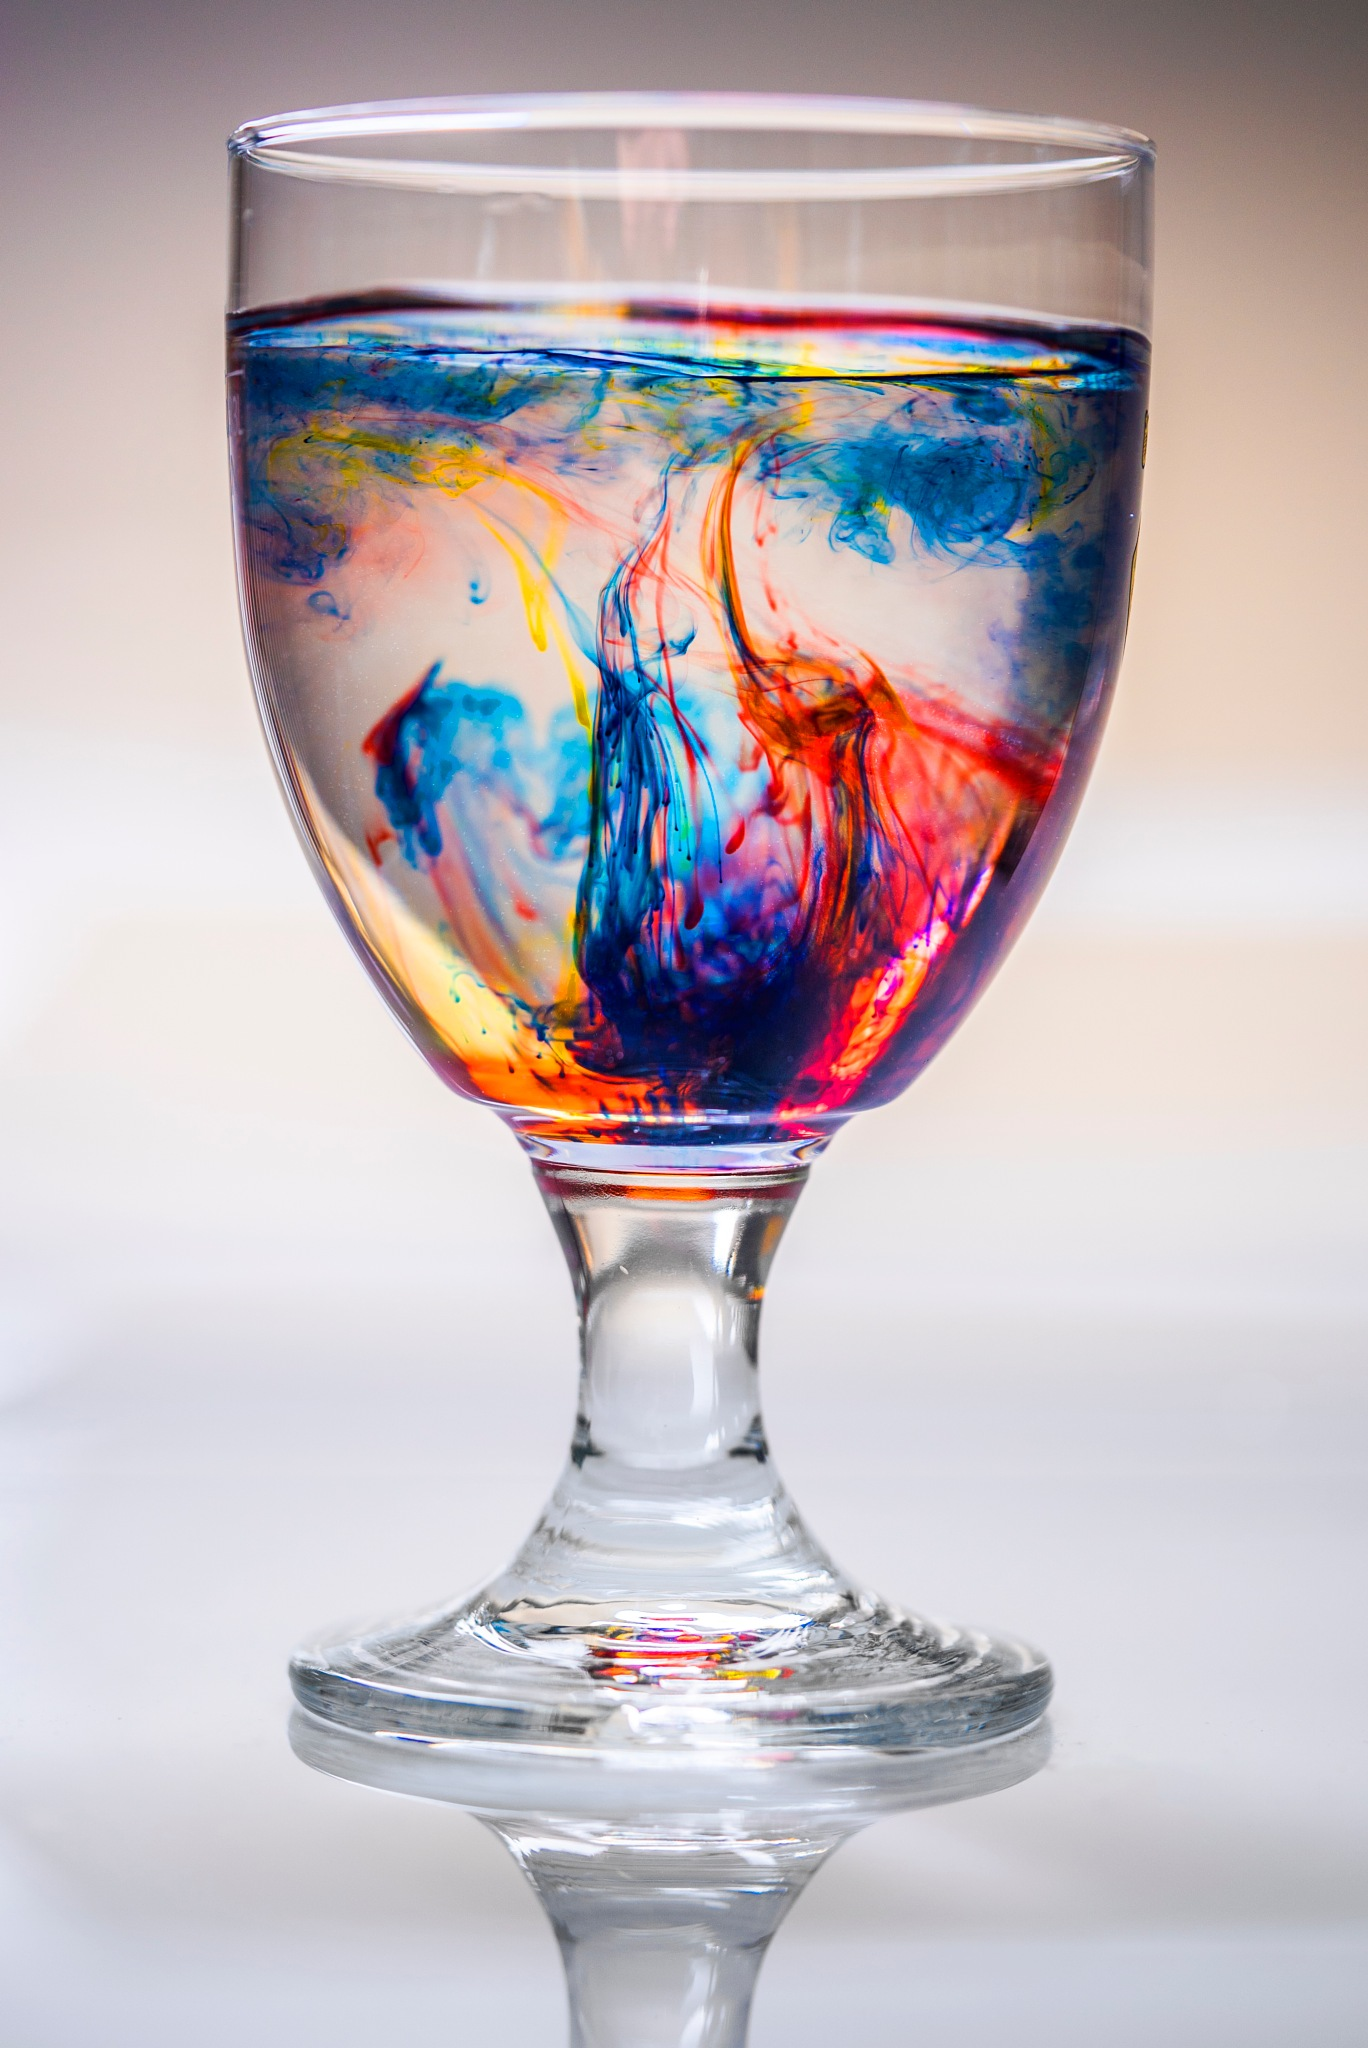 Colored water by fred.leeflang.7